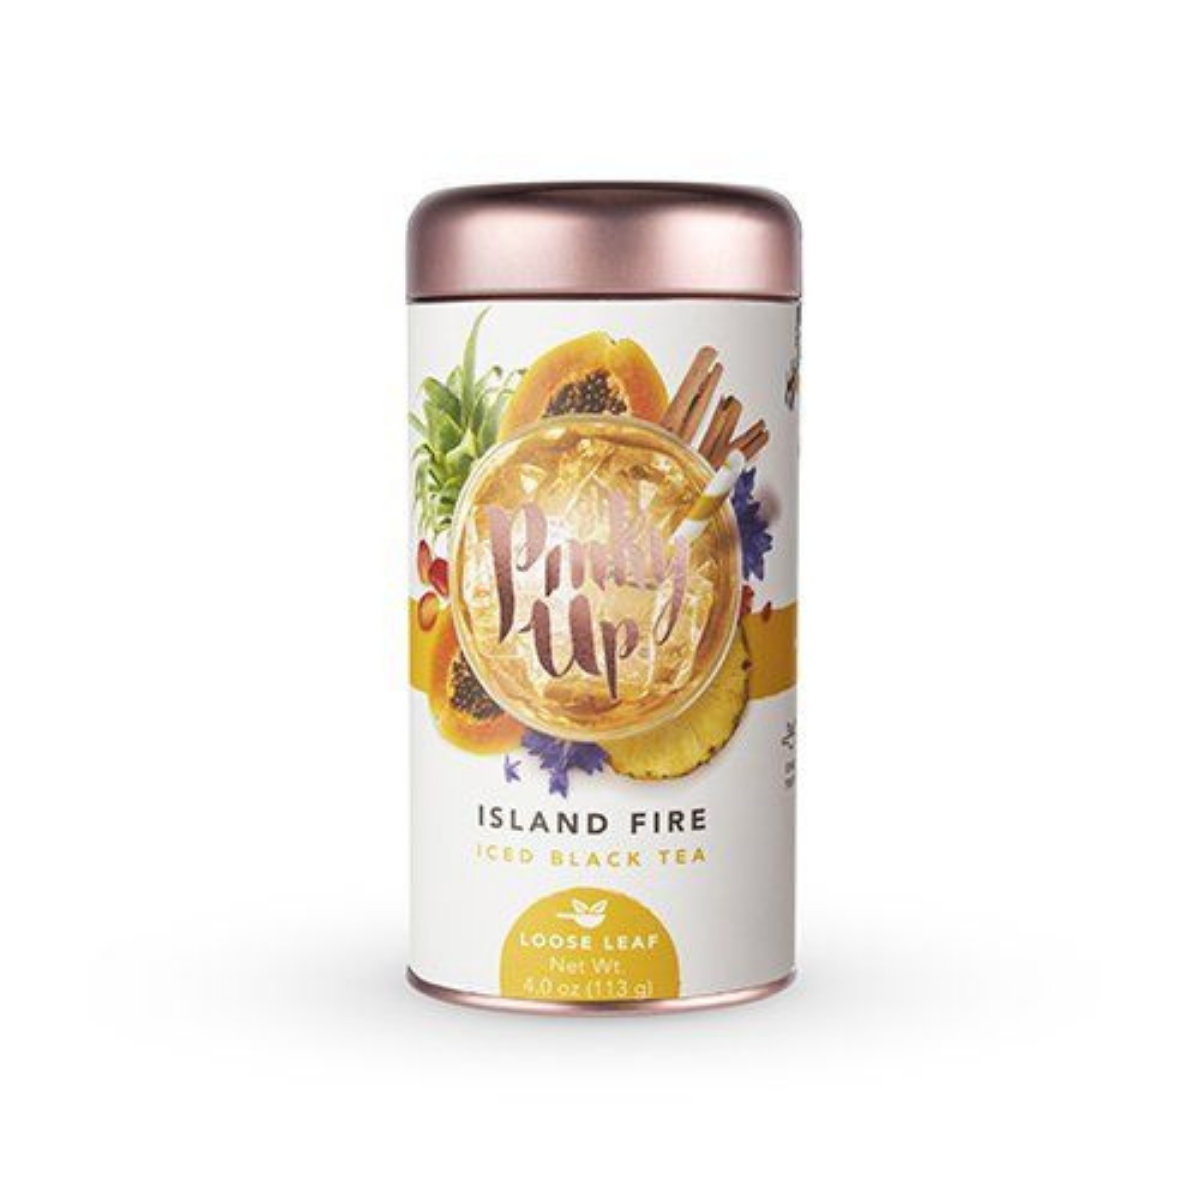 Island Fire (Loose Leaf Tea) - Offensive Mug